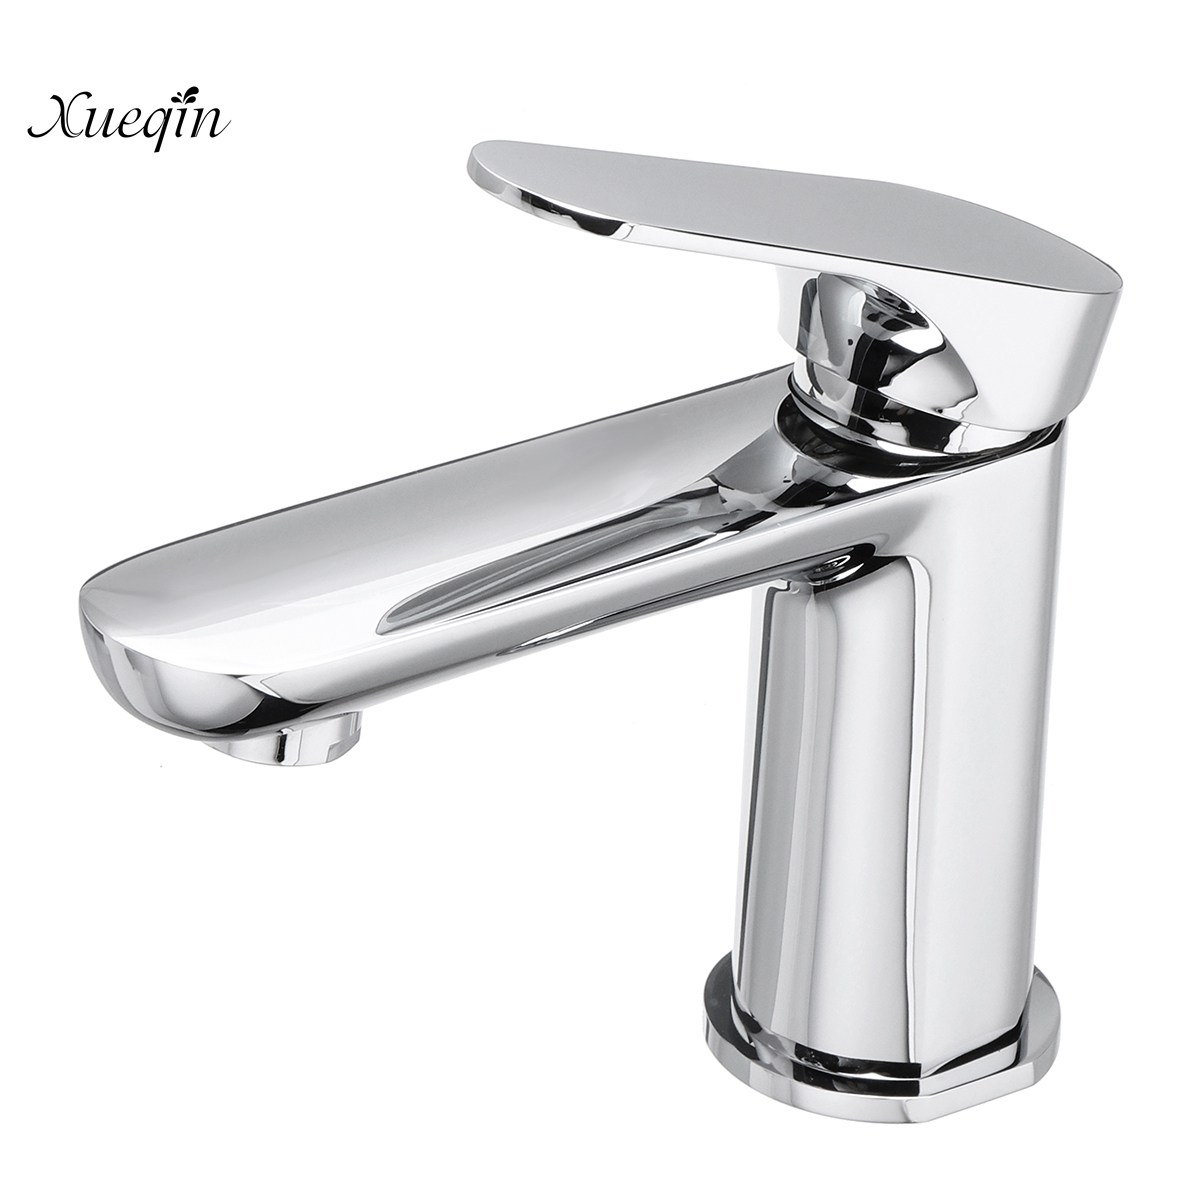 Modern Chrome Bathroom Waterfall Faucet Basin Sink Mixer Tap Single Handle Basin Faucet Desk Mount Brass Home newly modern simple bathroom waterfall widespread basin sink faucet chrome polish single handle single hole mixer tap deck mount